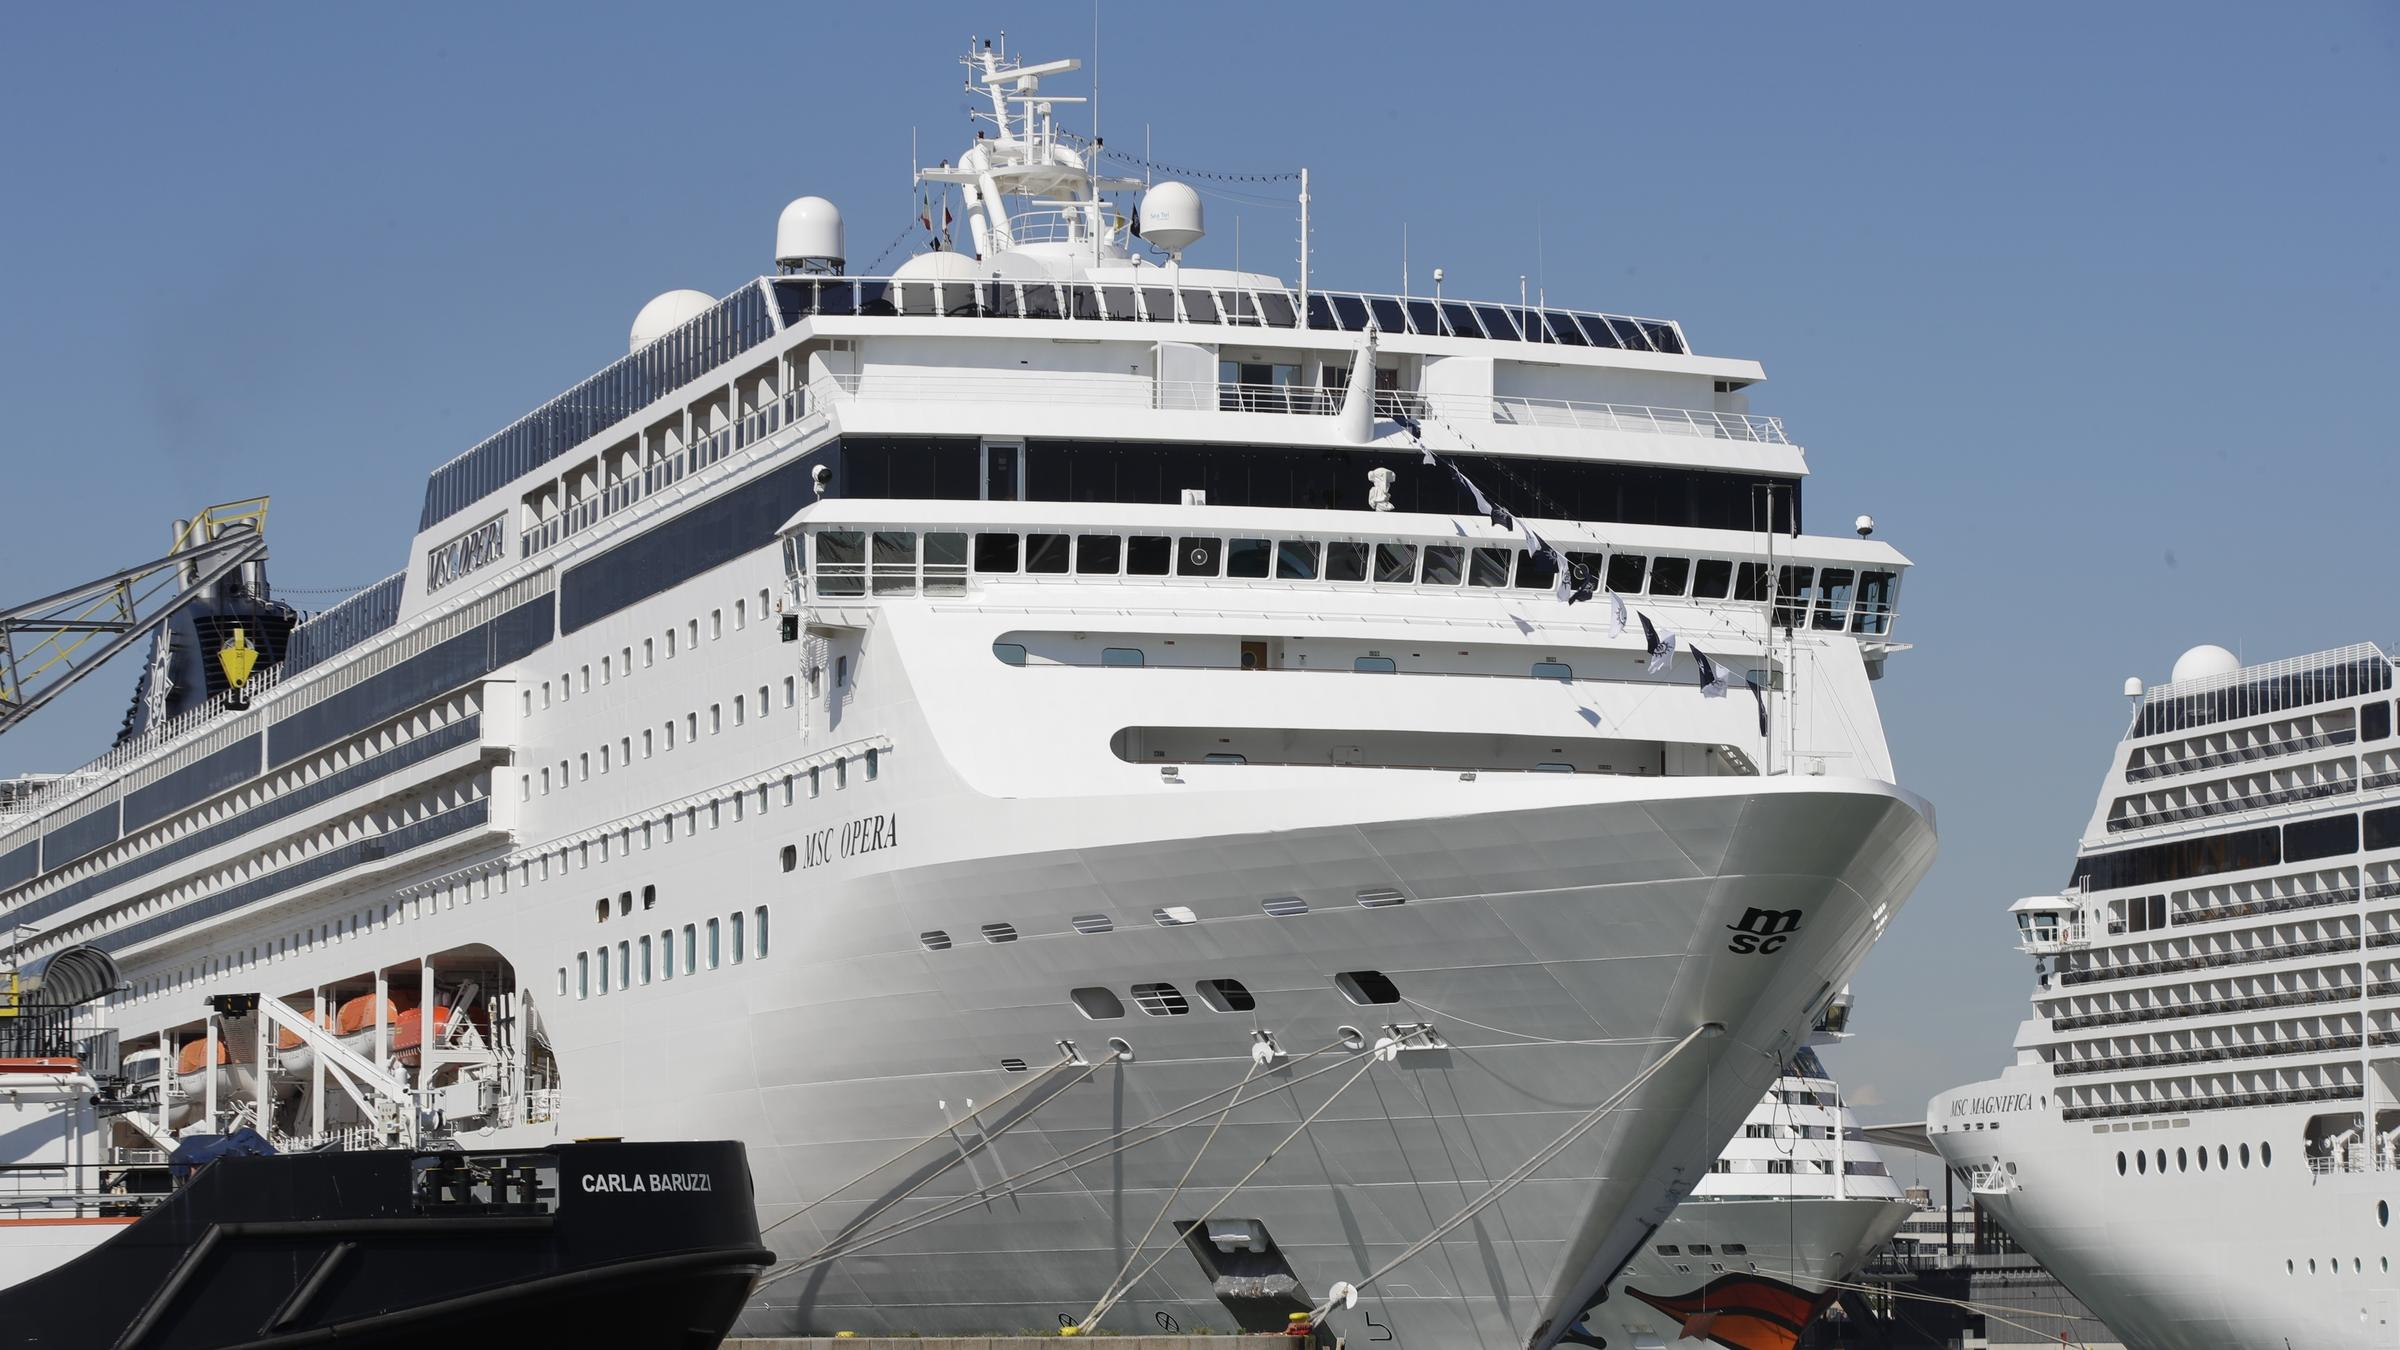 Mive Cruise Ship Crashes Into Port In Venice, Injuring At ... on venice italy tourist attractions map, train station venice map, venice airport map, venice italy hotel areas map, venice grand canal map, downtown venice map, venice lagoon map,